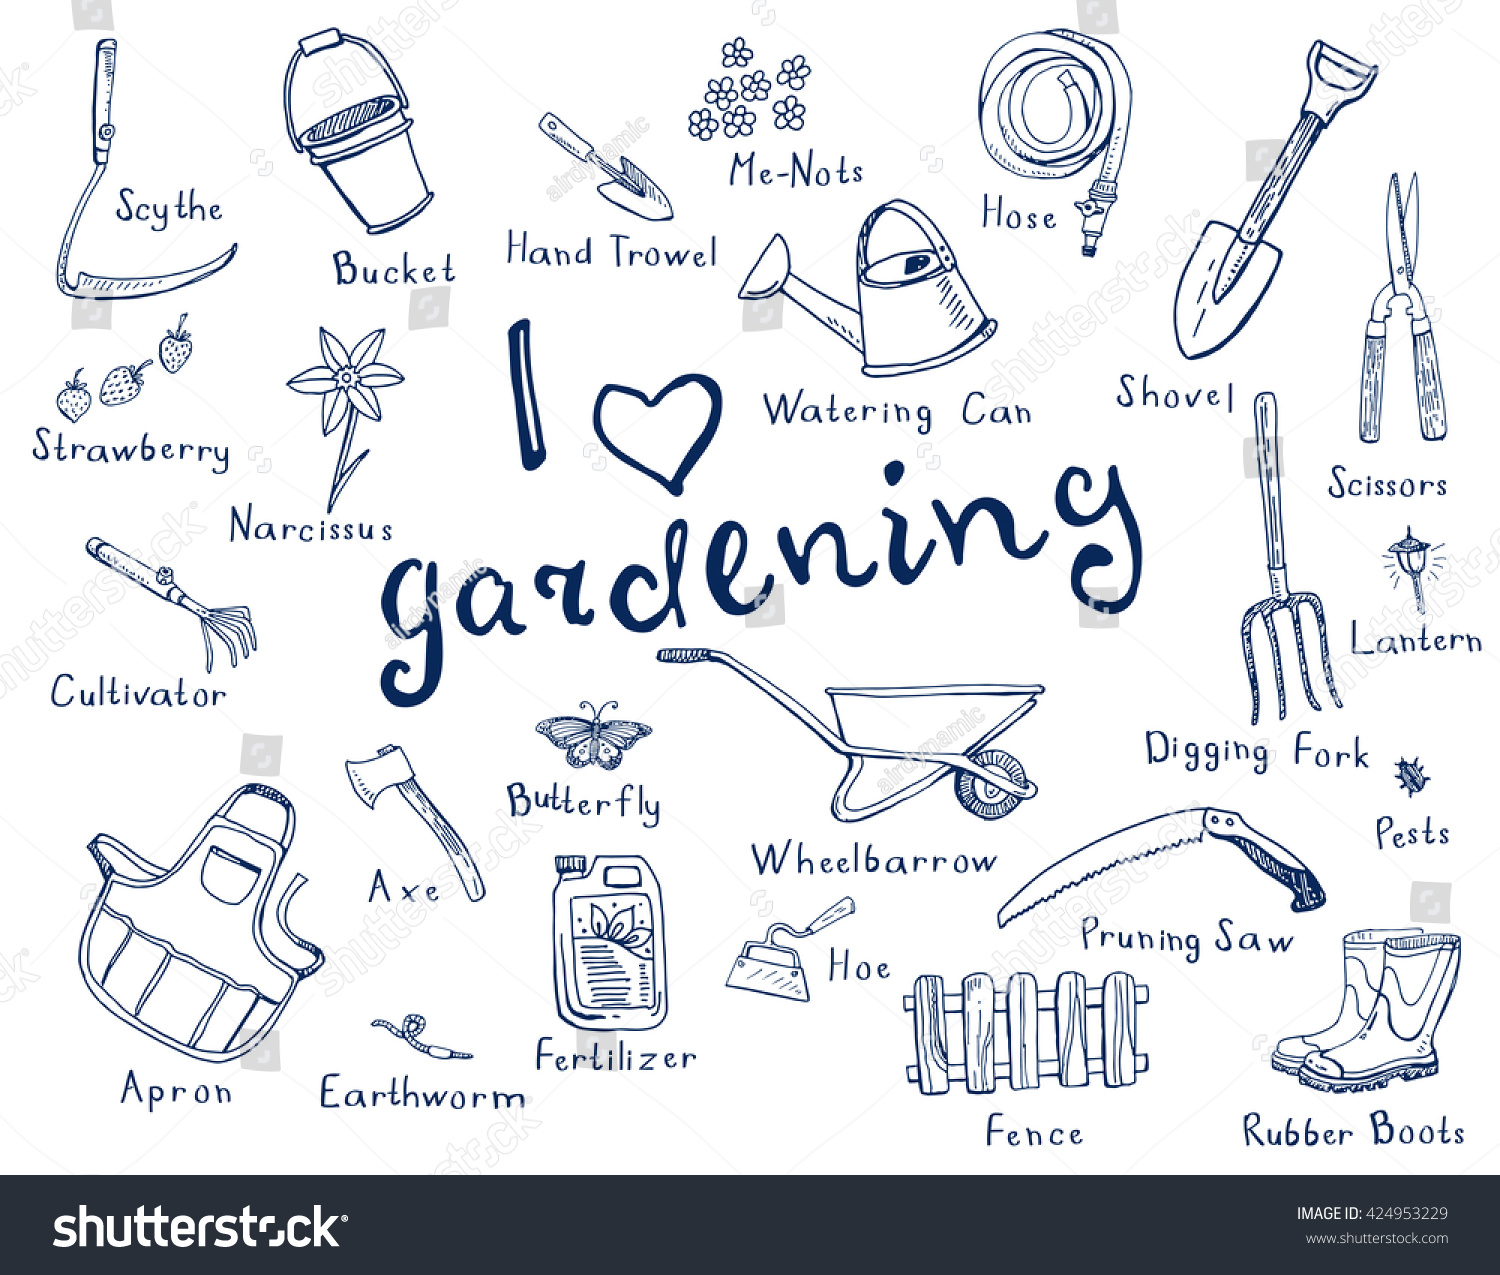 Gardening Tool Names Garden Guides. Garden tools and their names   magiel info